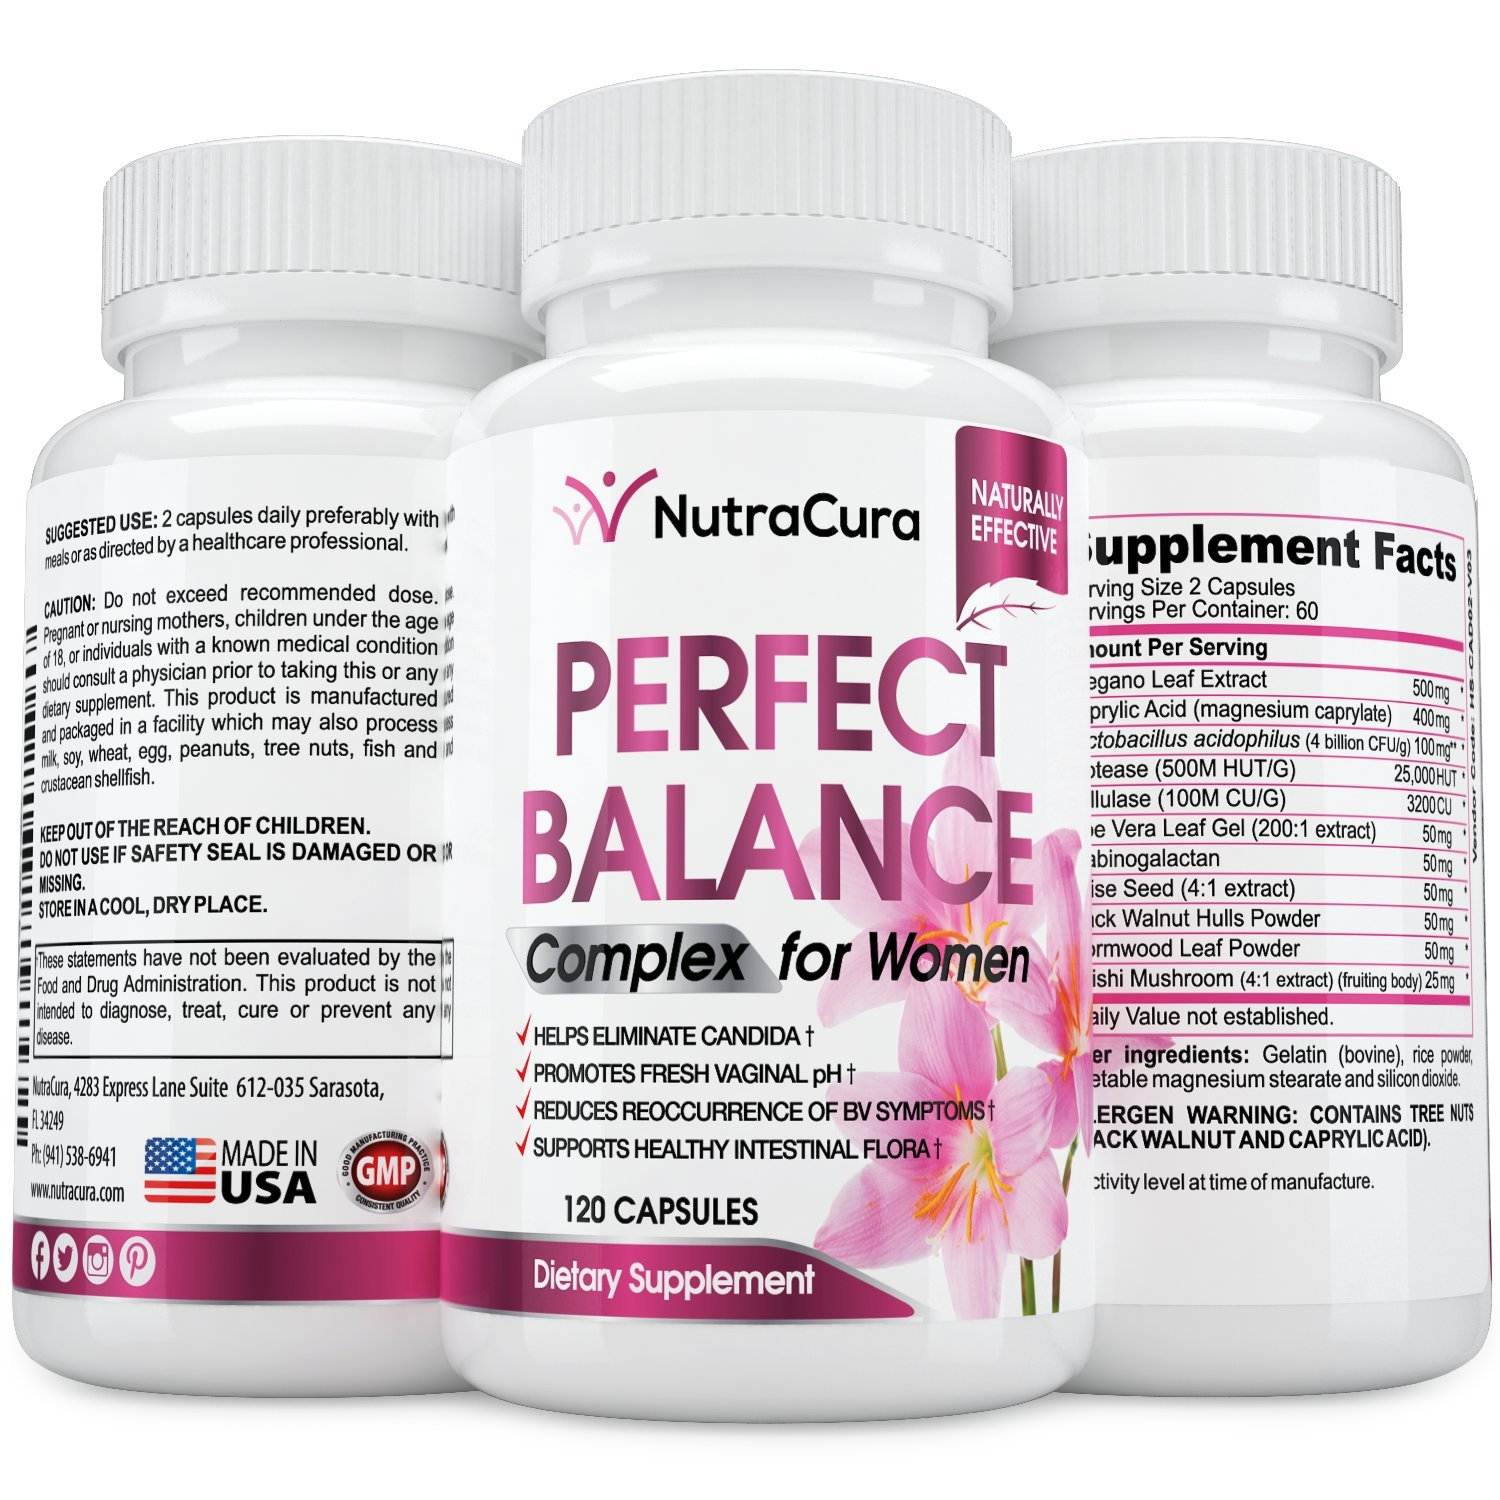 Perfect Balance Complex for Women - Vaginal Health Dietary Supplement - Helps Eliminate Candida - Promotes Fresh Vaginal pH -120 Capsules by NutraCura